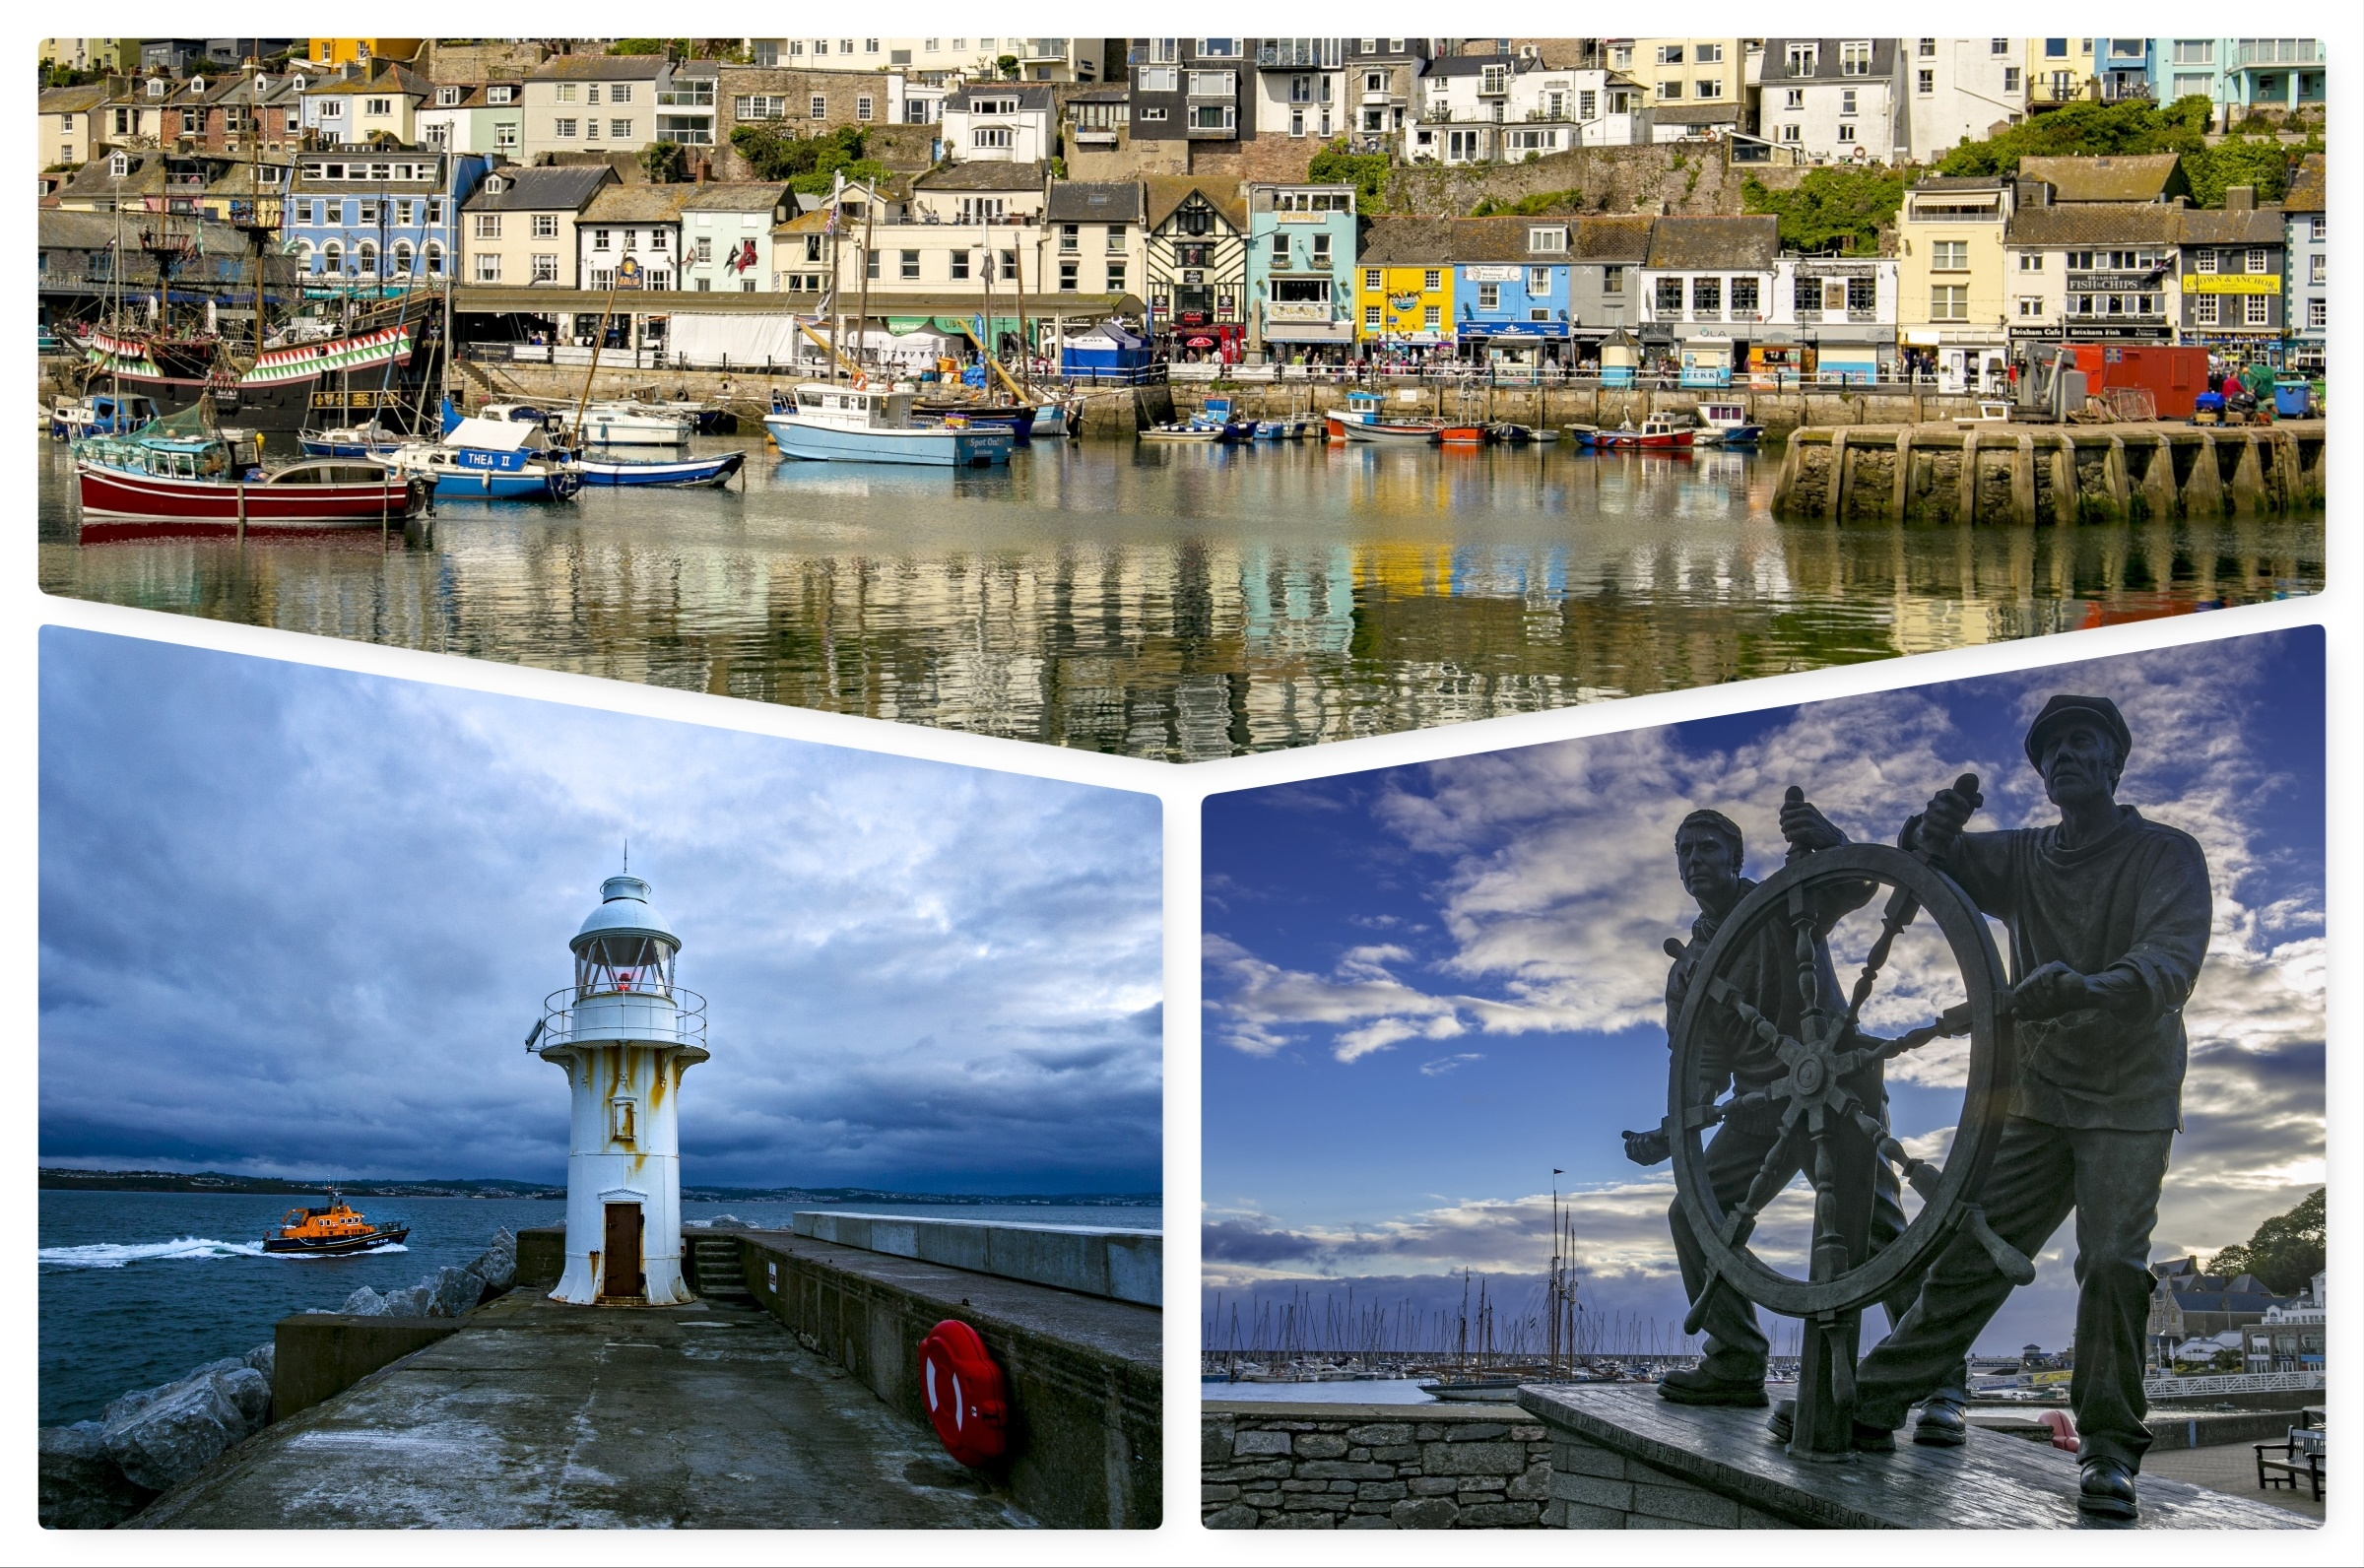 Steve Mantell photographs Brixham